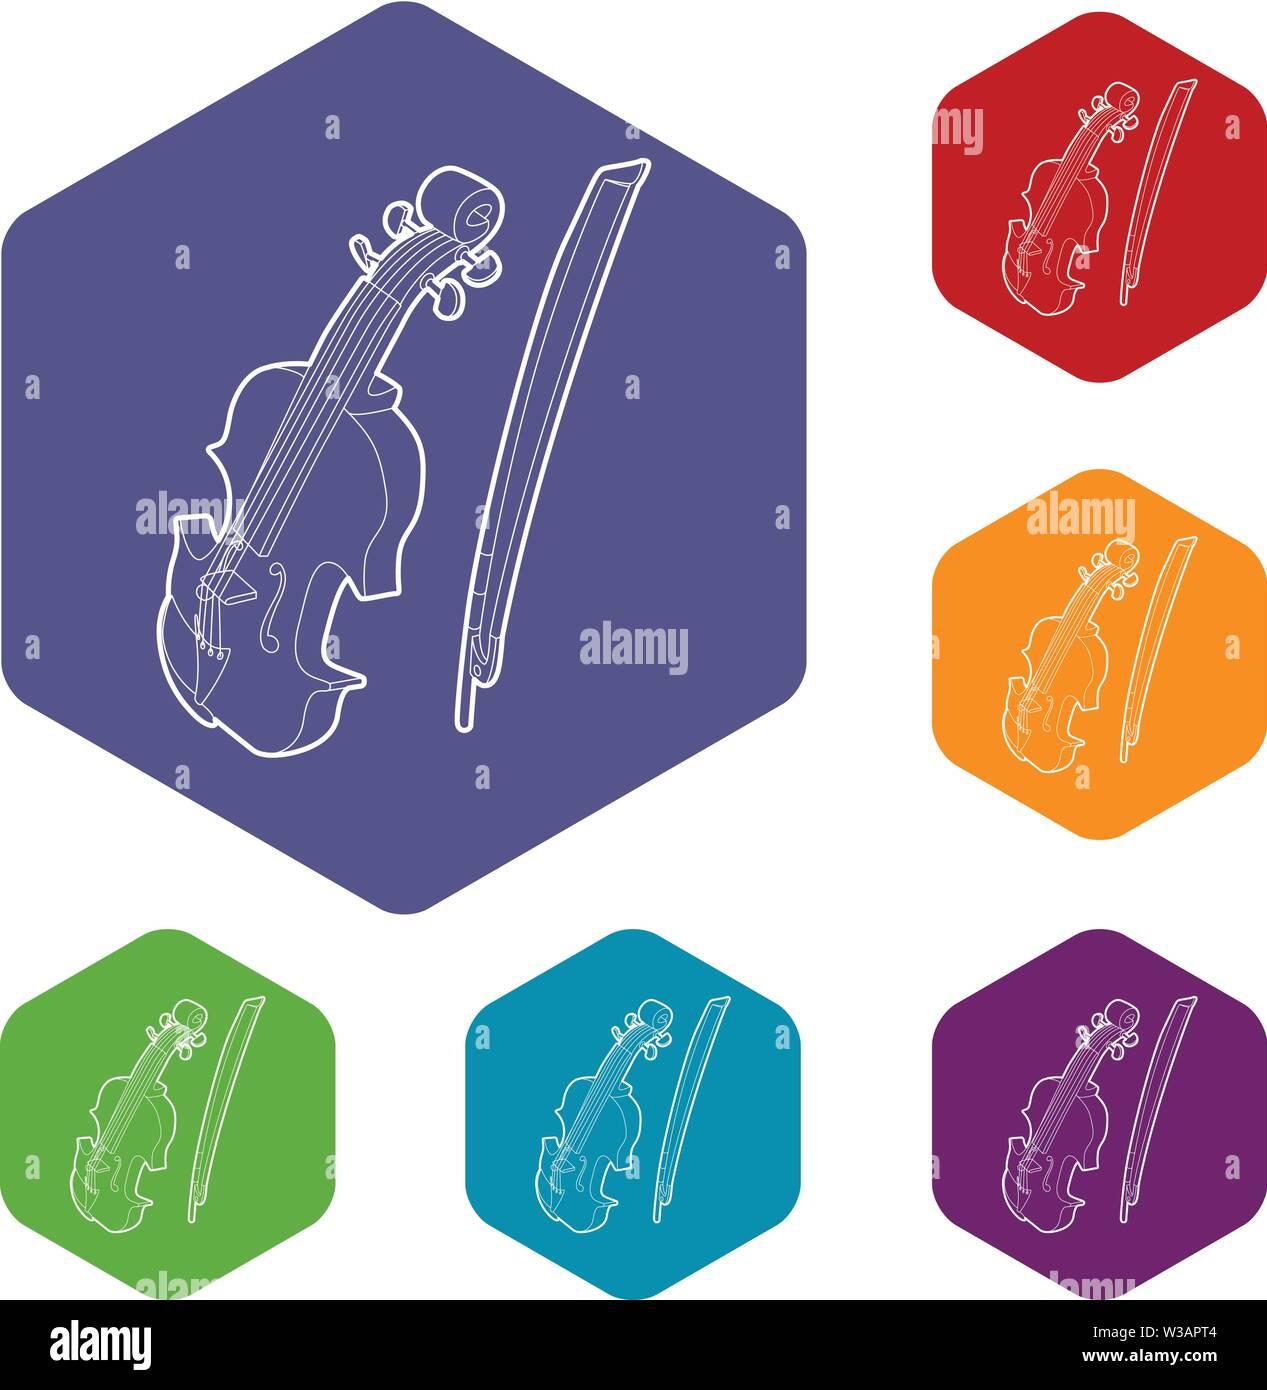 Contrabass icons vector hexahedron - Stock Image